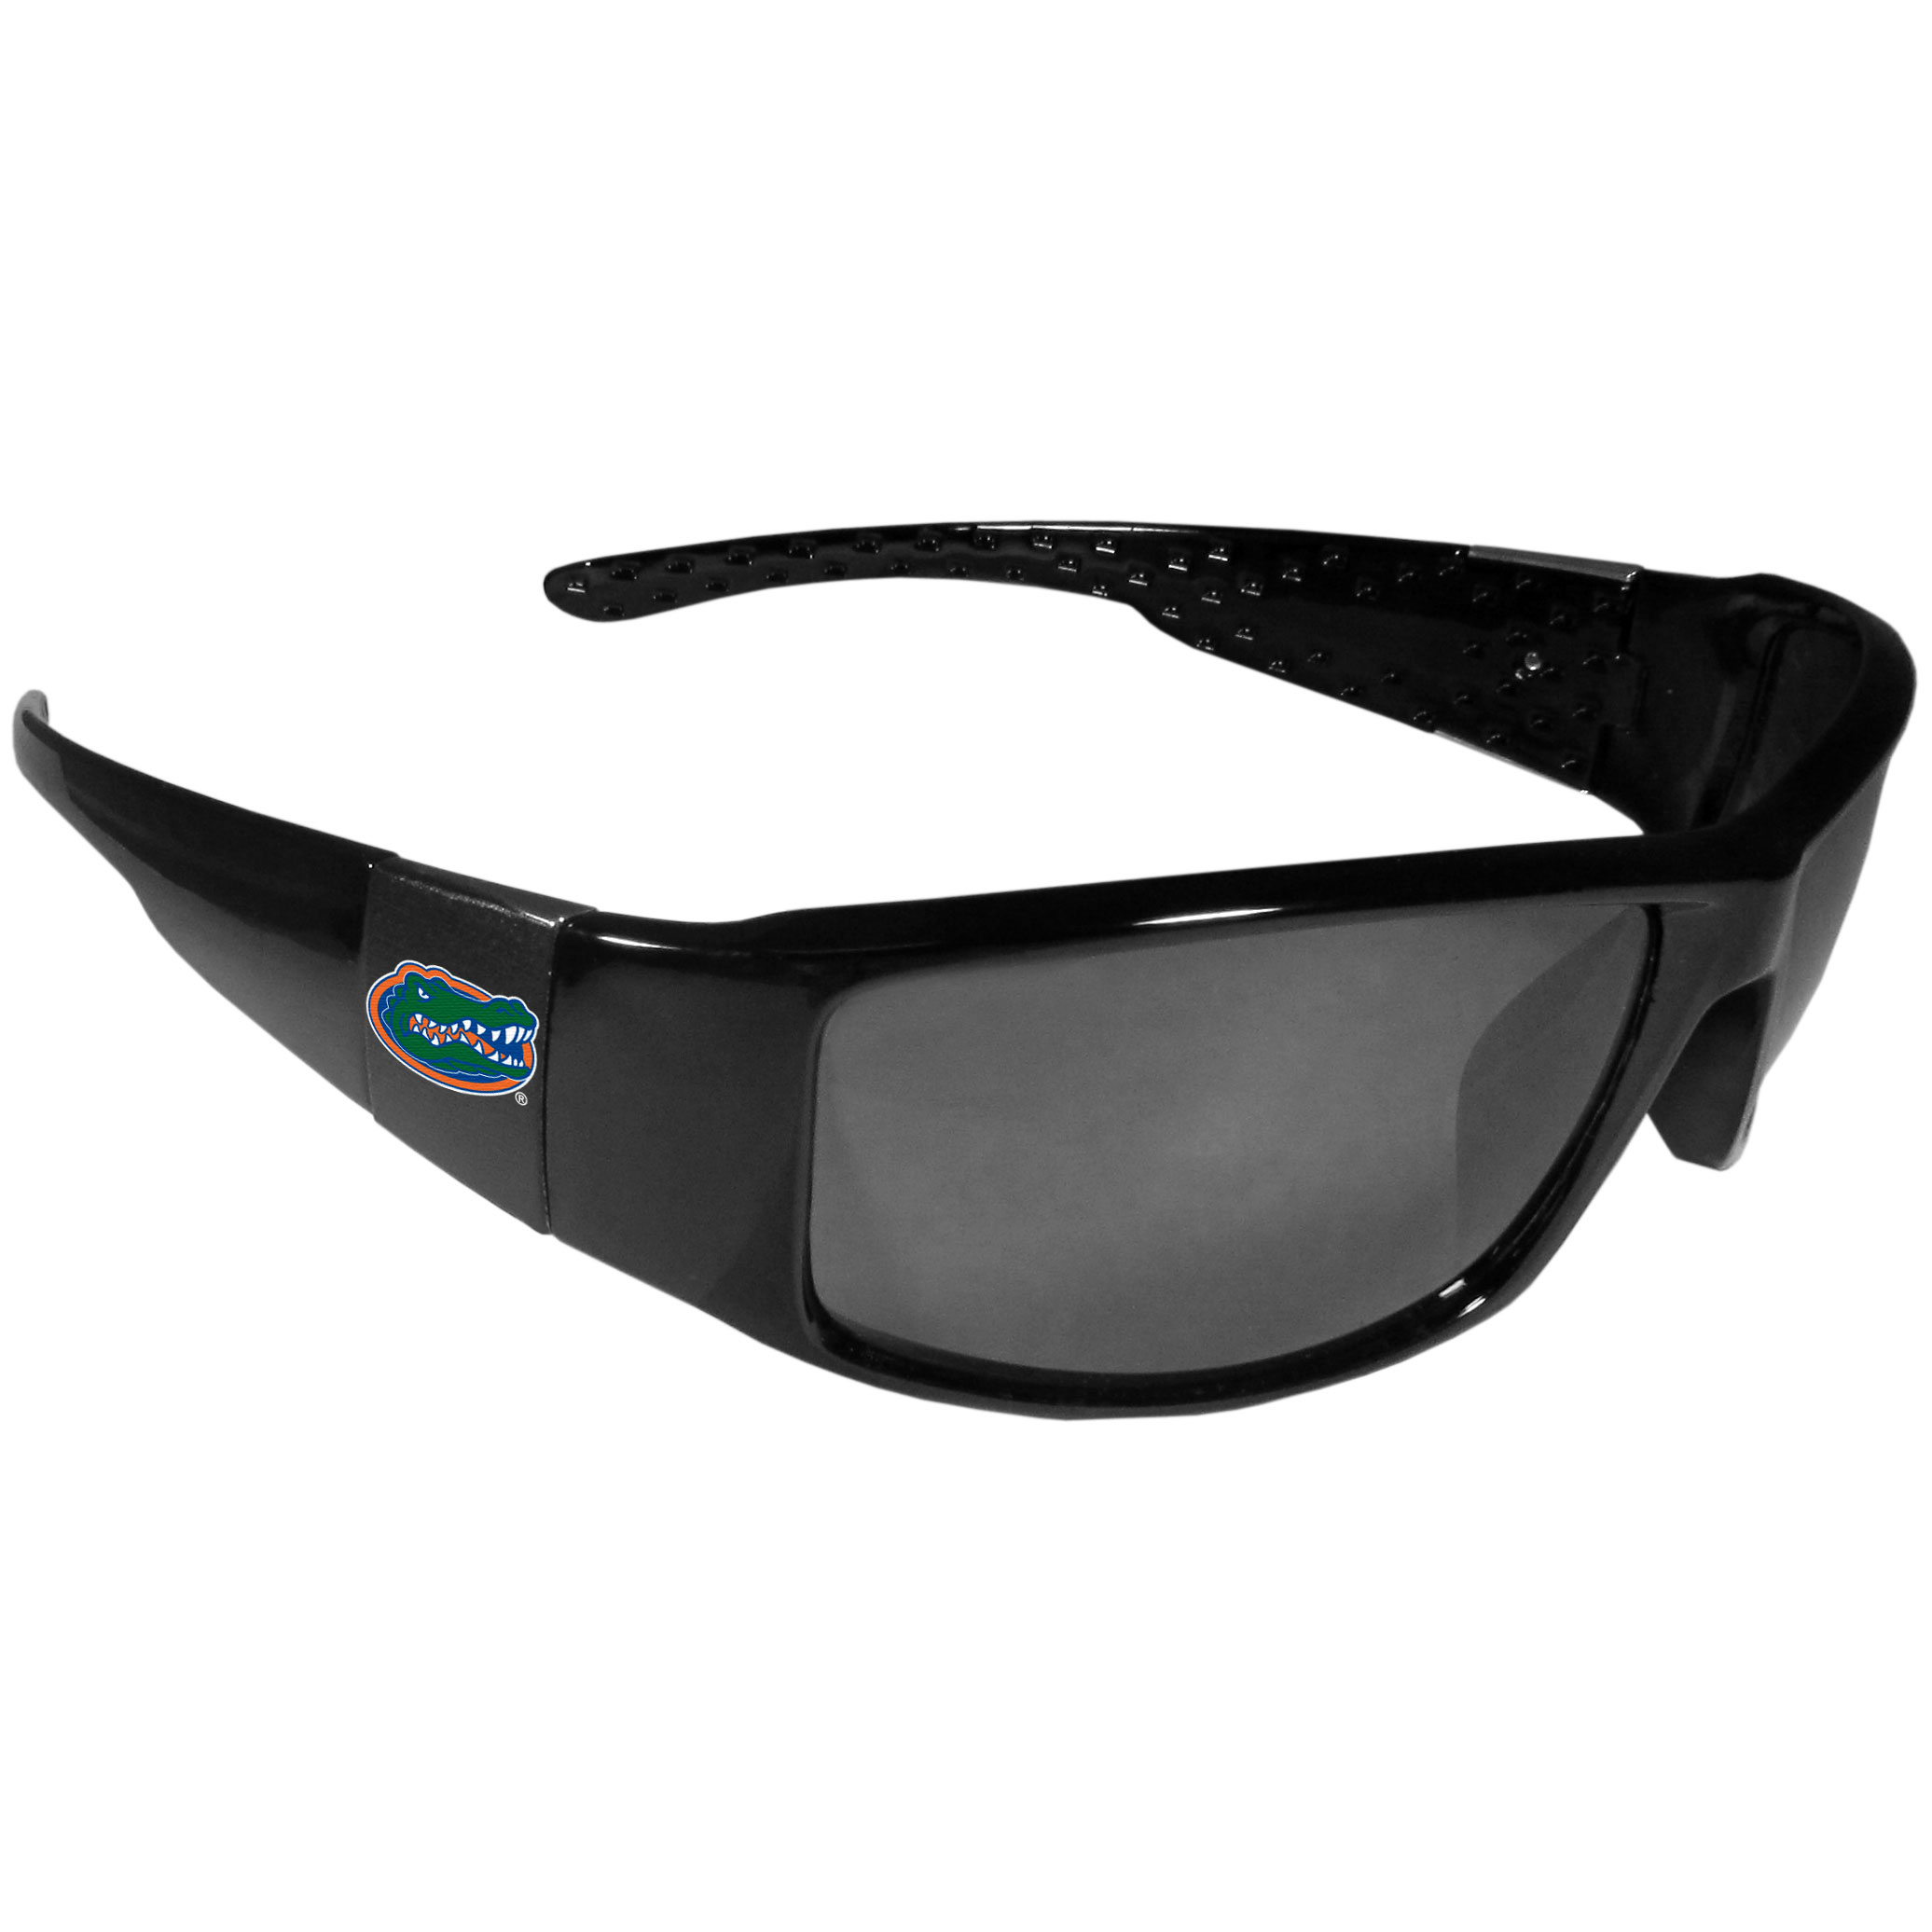 Florida Gators Black Wrap Sunglasses - These designer inspired frames have a sleek look in all black with  Florida Gators shields on each arm with a printed logo. The shades are perfect for any outdoor activity like; golfing, driving, hiking, fishing or cheering on the team at a tailgating event or at a home game day BBQ with a lens rating of 100% UVA/UVB for maximum UV protection. The high-quality frames are as durable as they are fashionable and with their classic look they are the perfect fan accessory that can be worn everyday for every occasion.